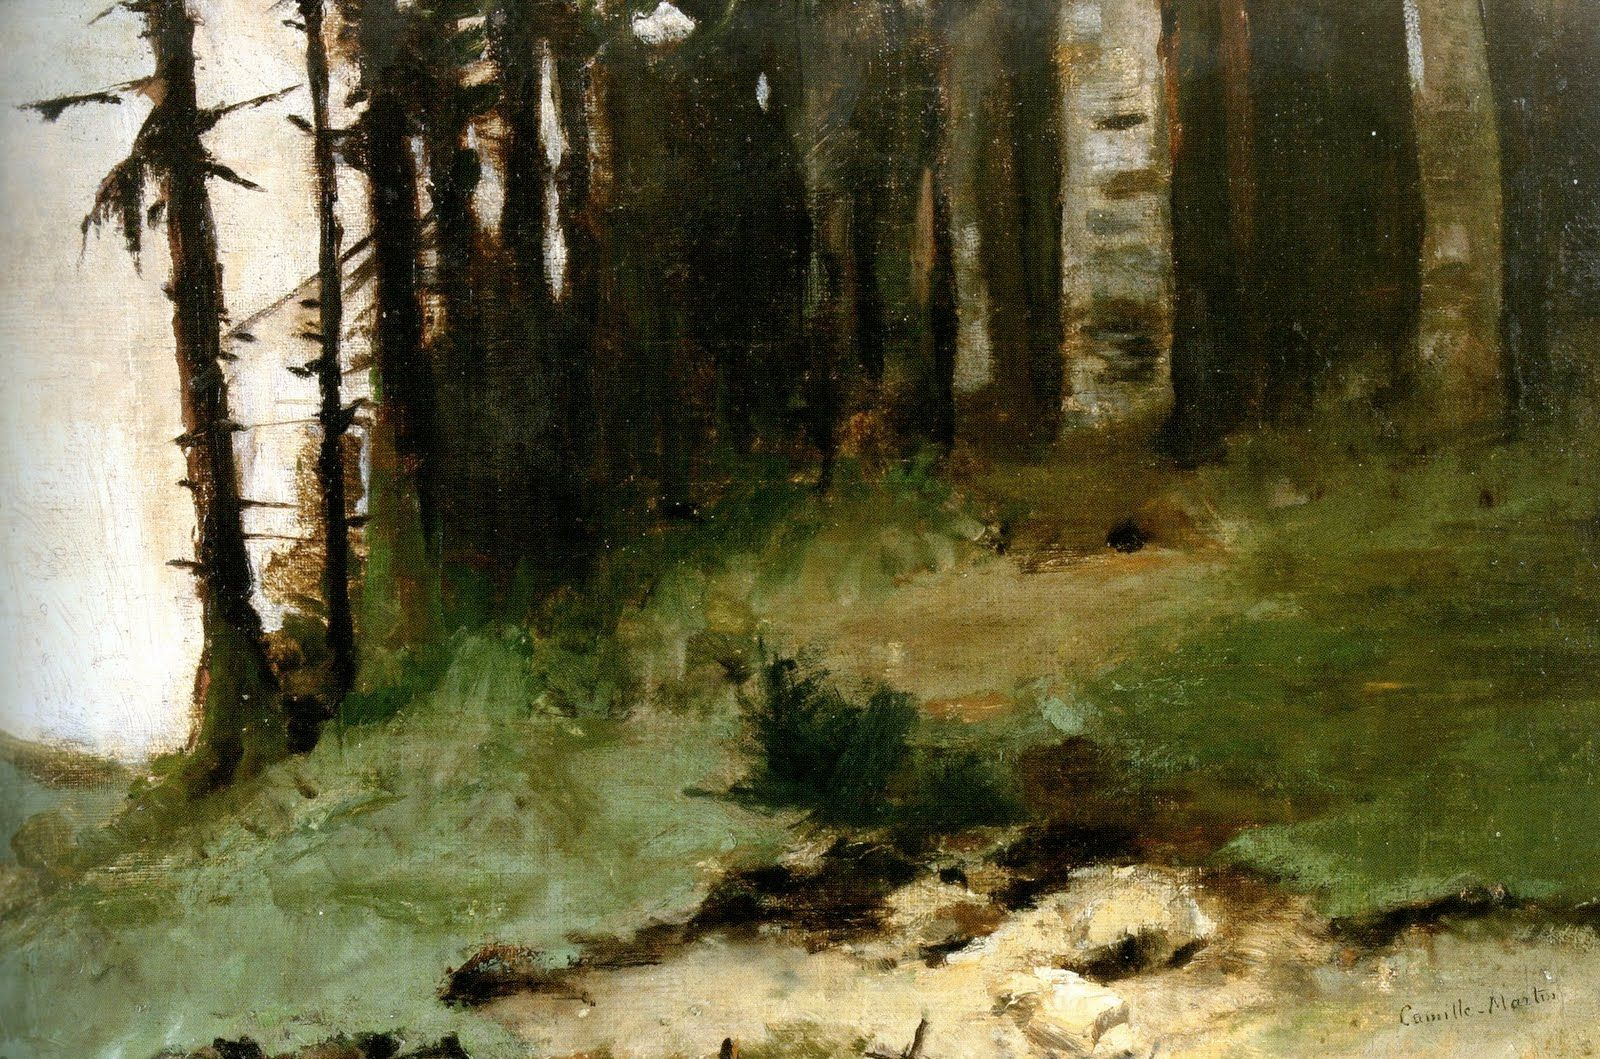 Camille Martin (1861-1898) - The Edge of the Forest. Oil on Canvas. Nancy, France. Circa 1885-1890.